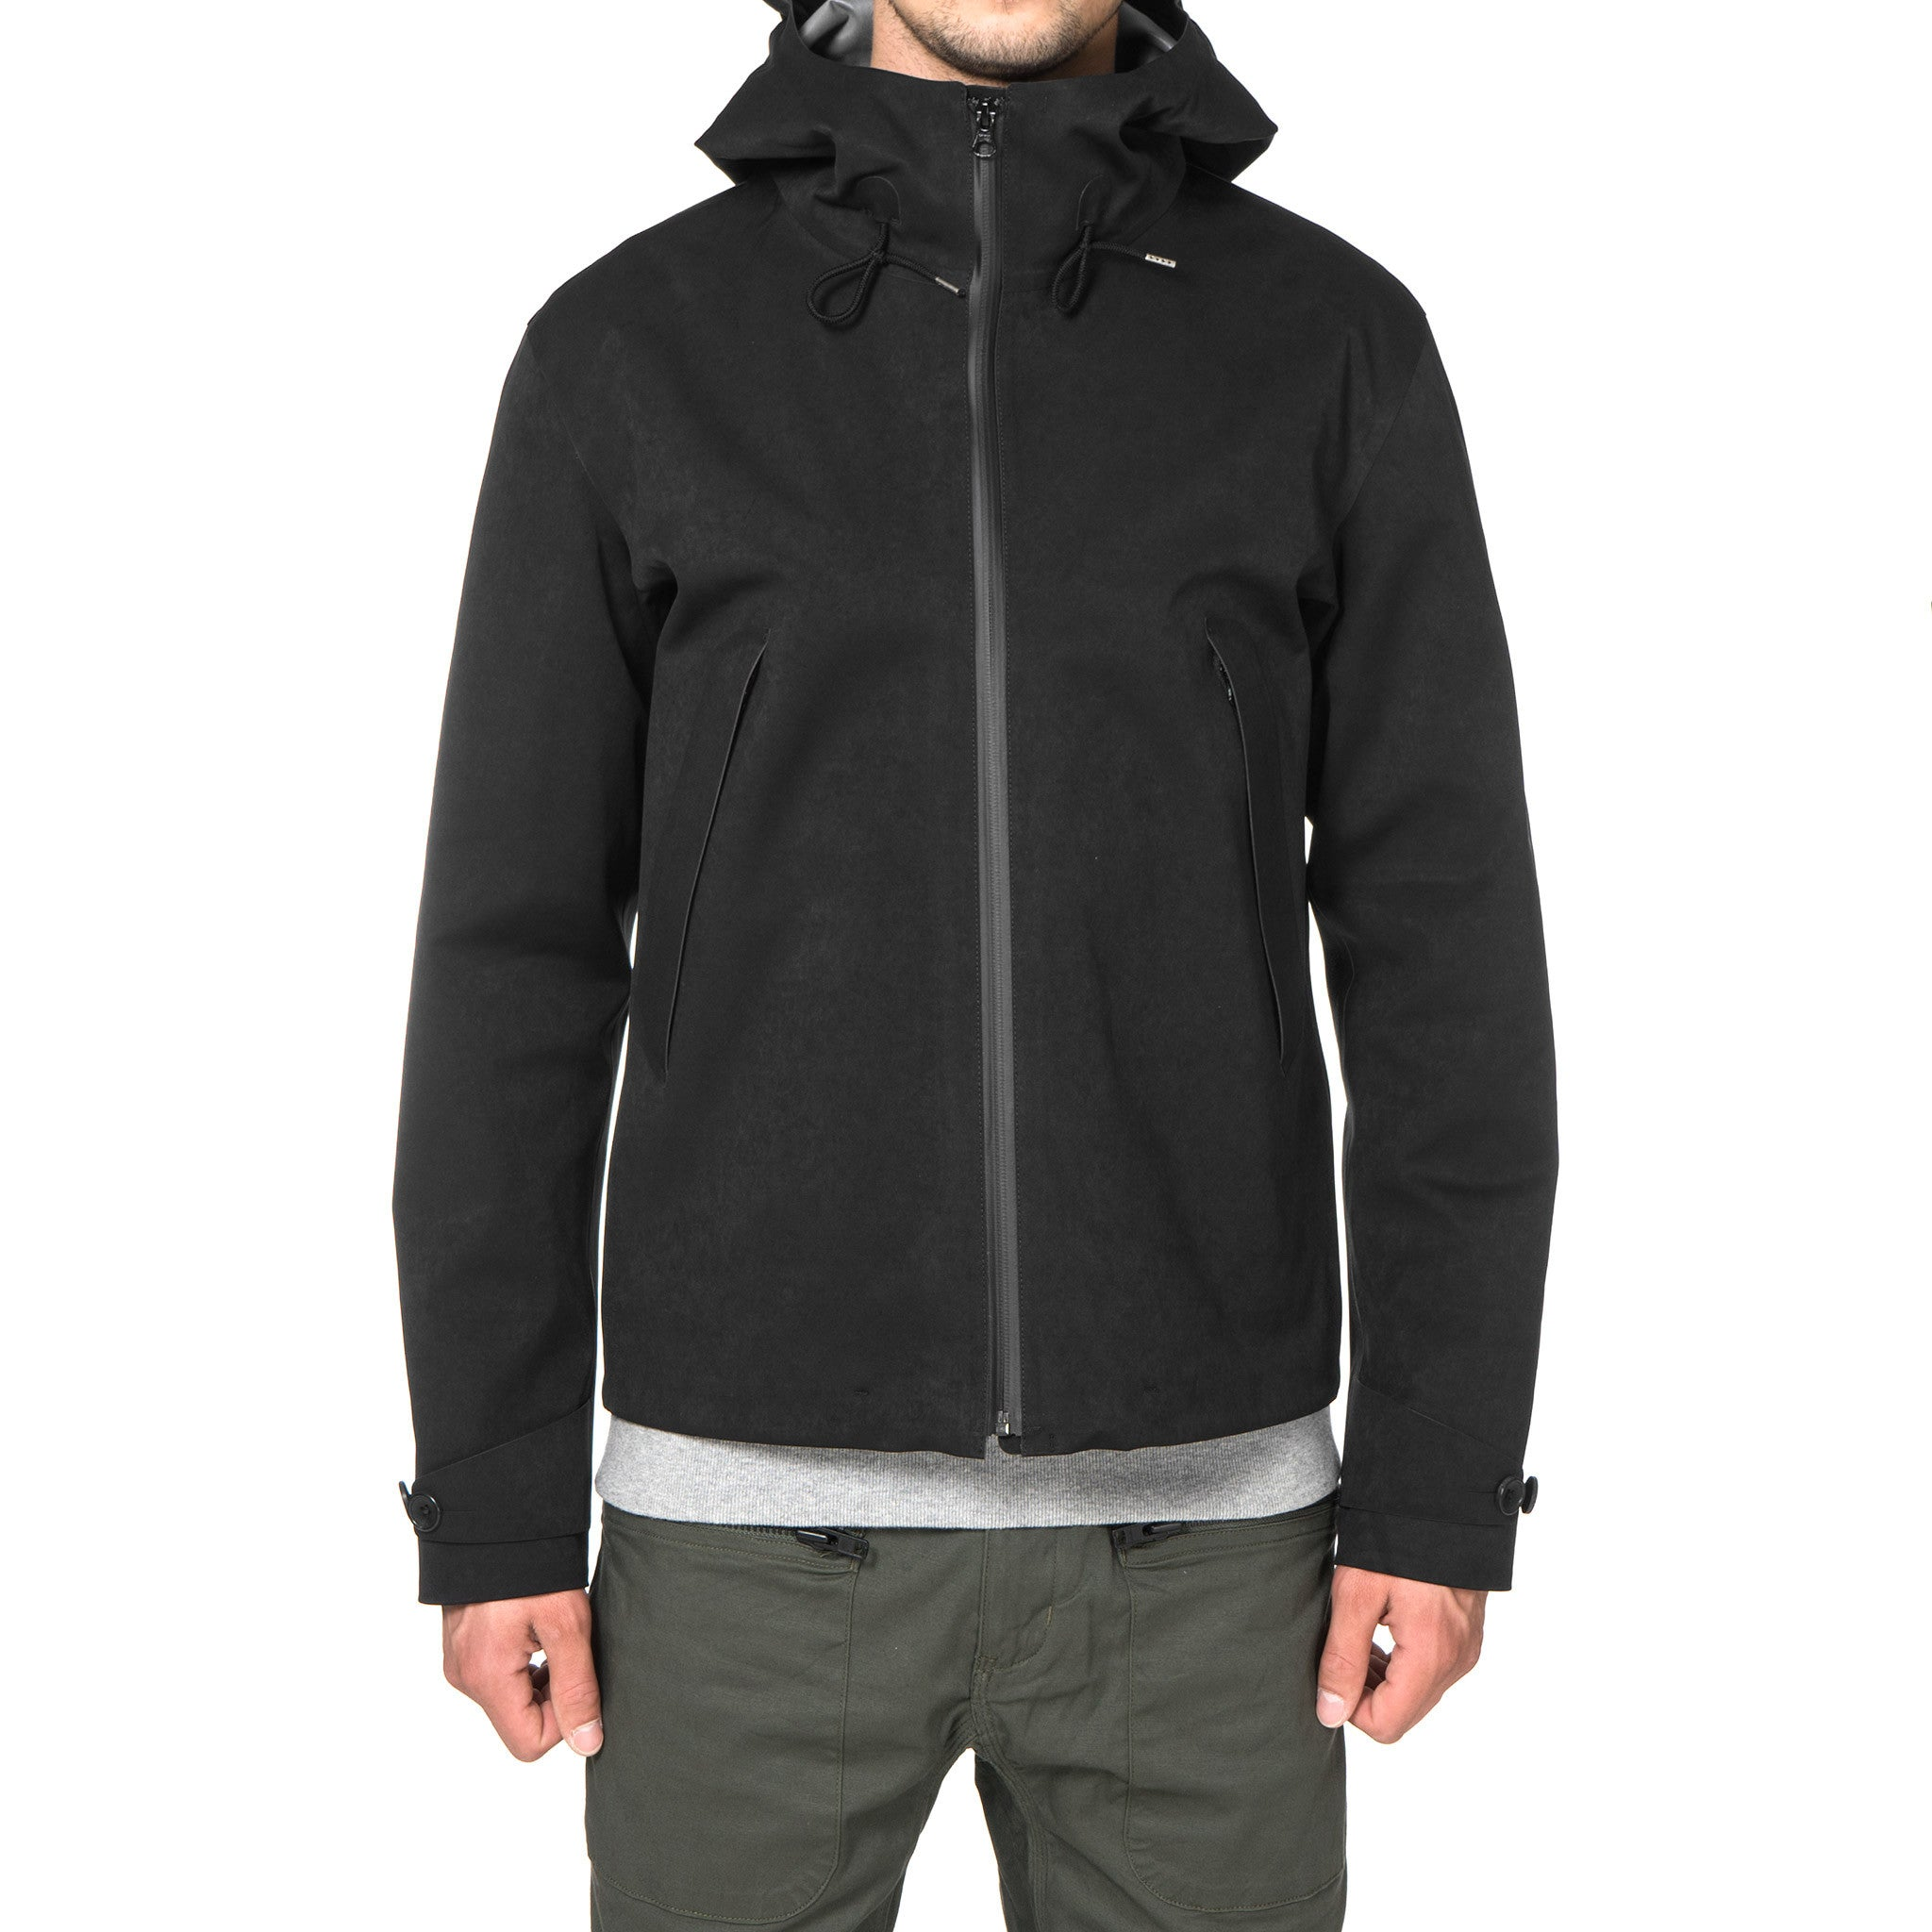 Ten-C-Anorak-3L-BLACK-2_2048x2048.jpg